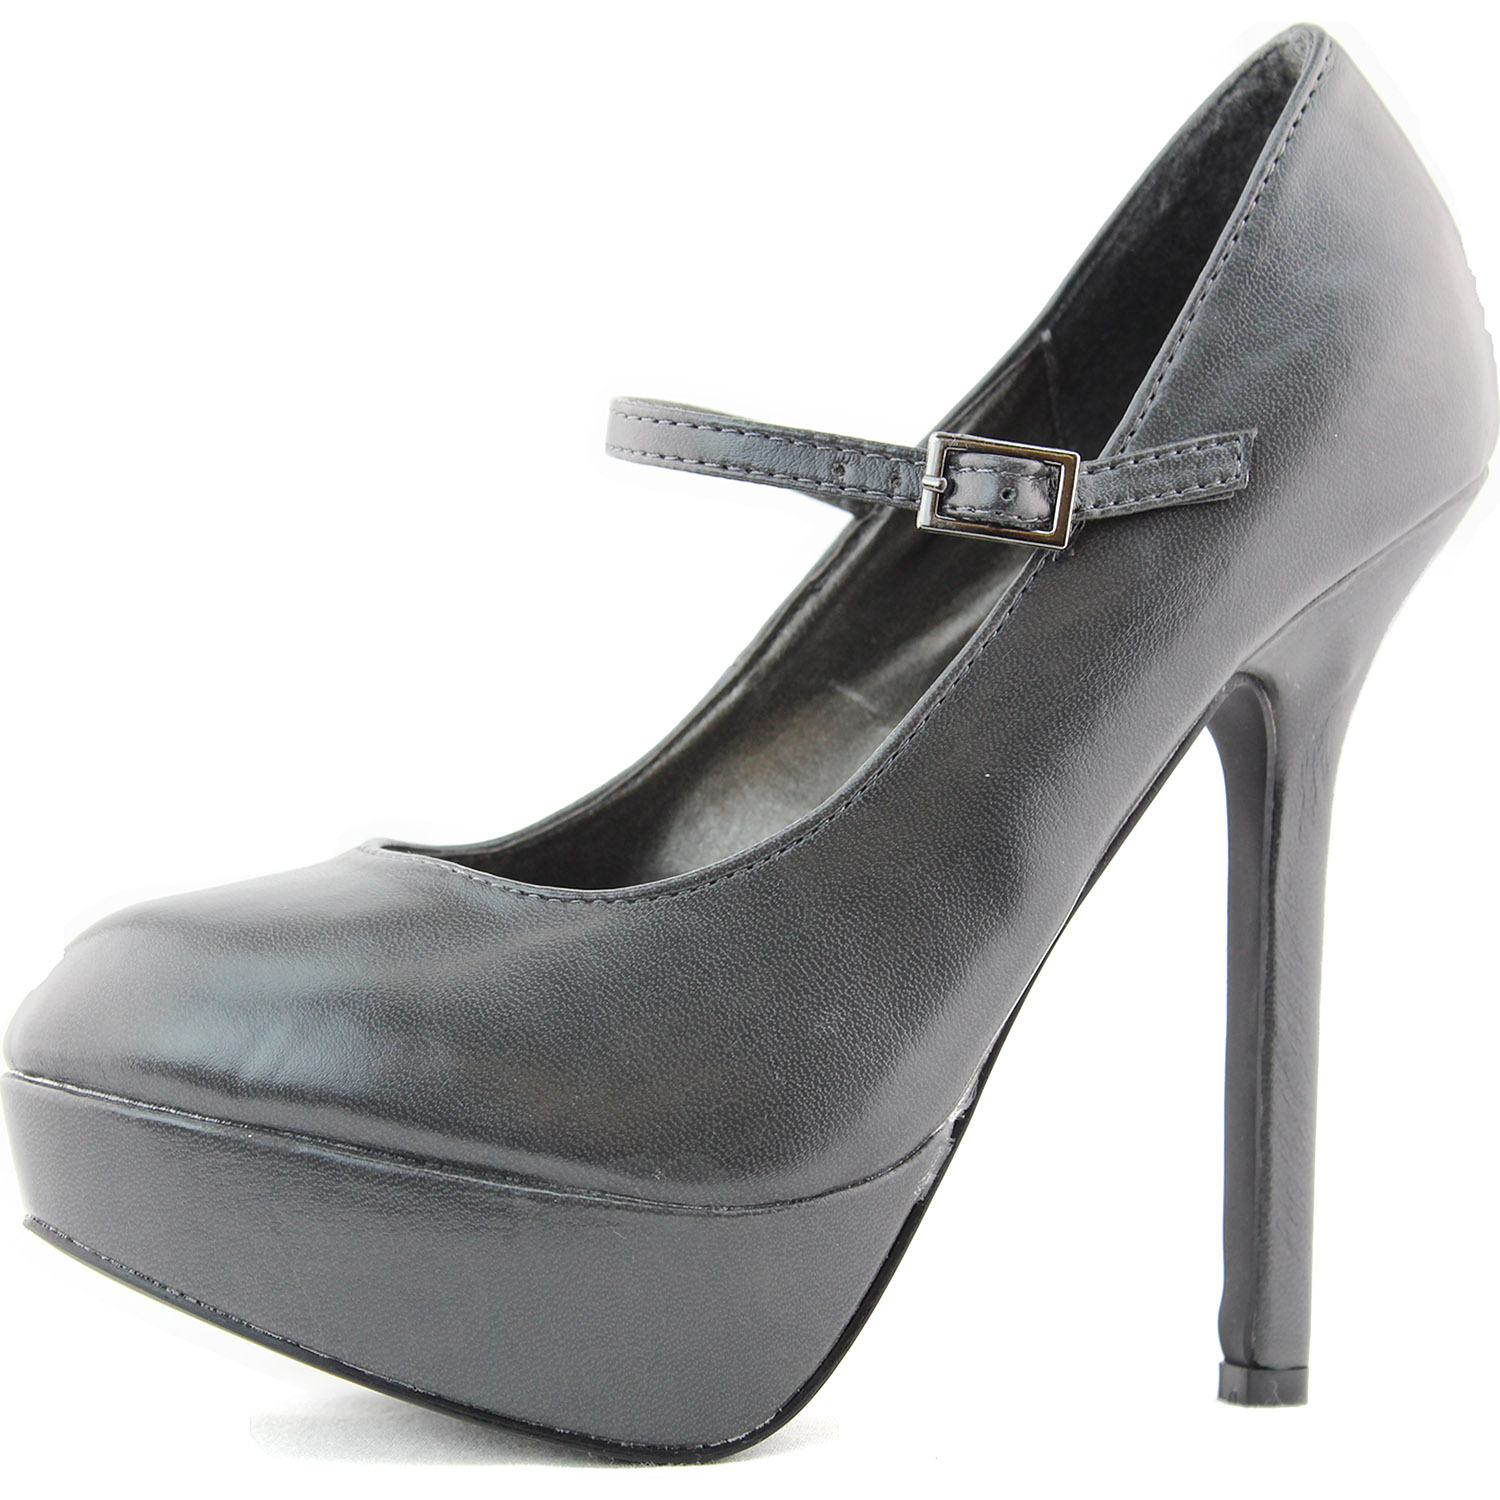 Grey High Heel Platform Pumps Mary Jane Instep Ankle Strap Fashion